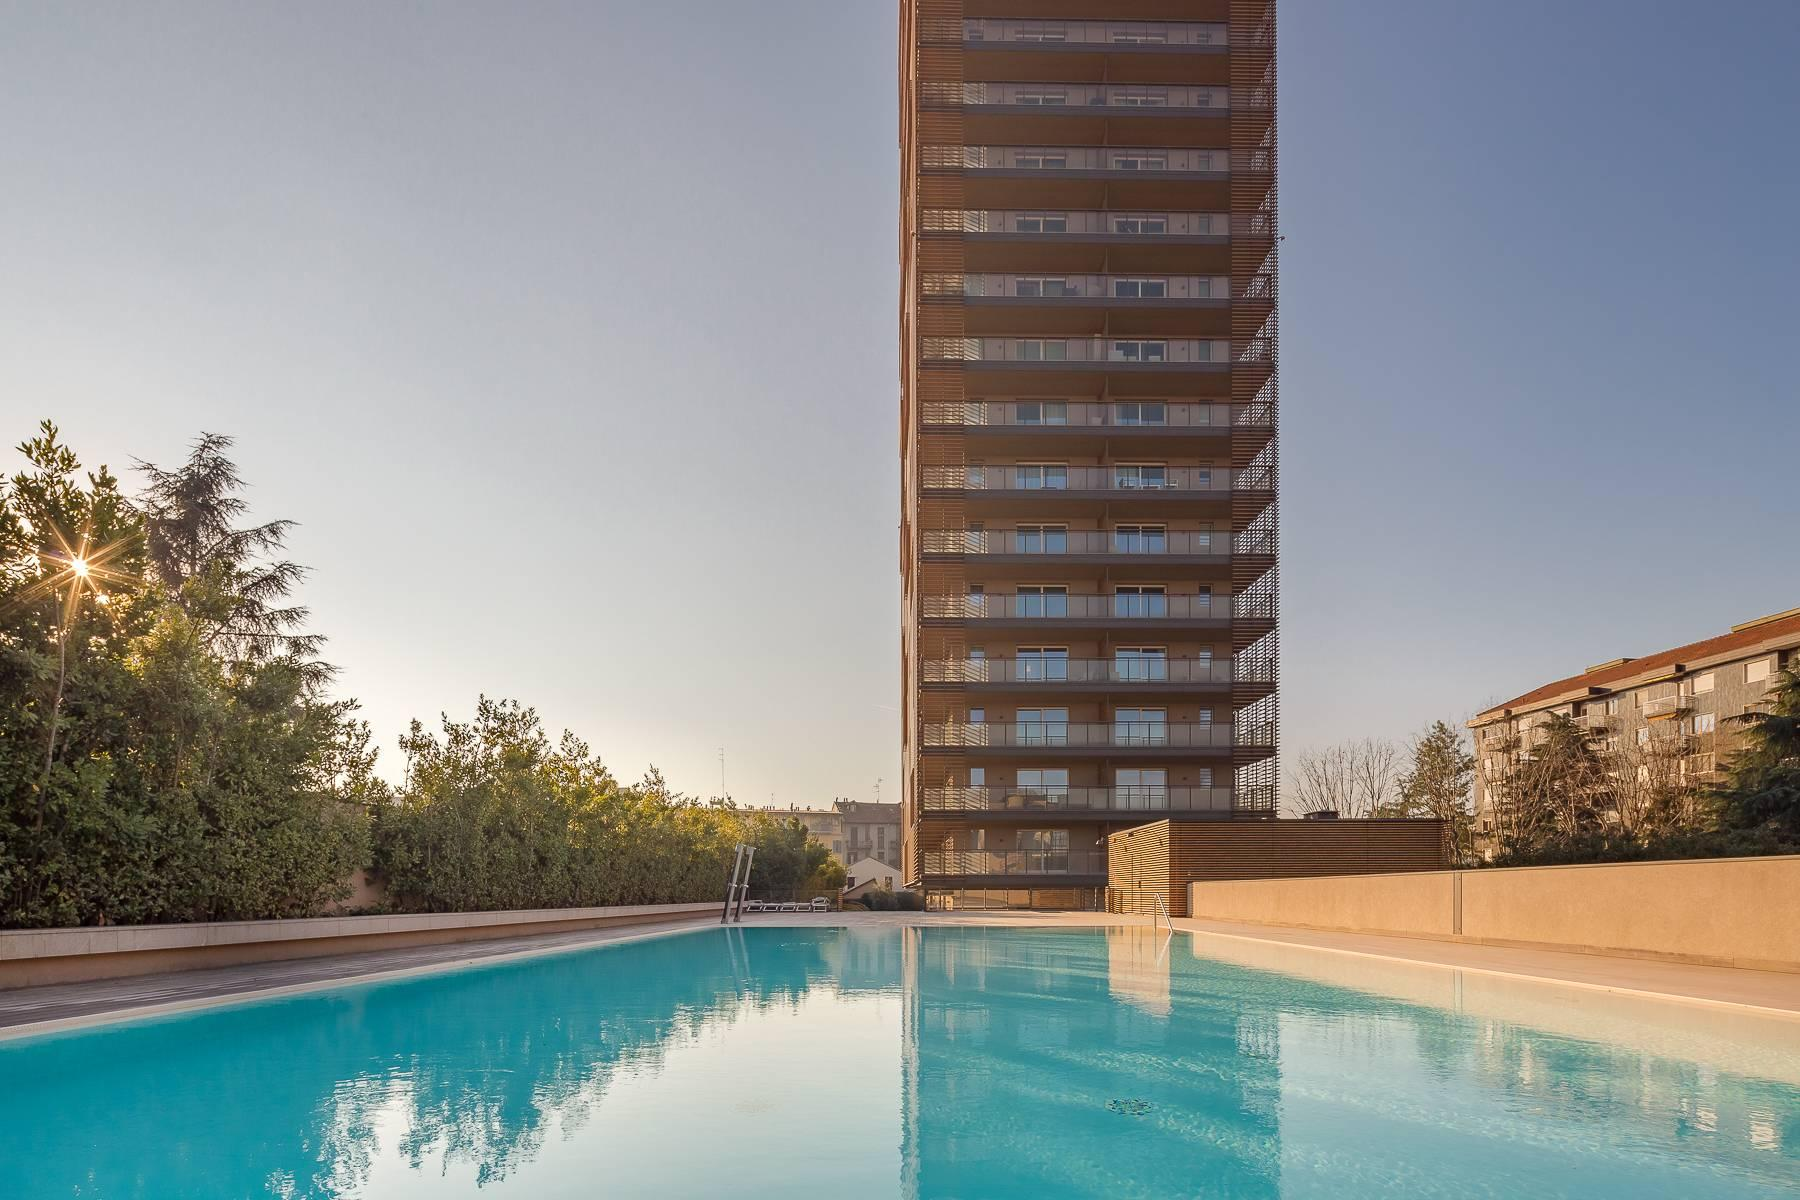 New two-room apartment with terrace in Giax Tower - 32